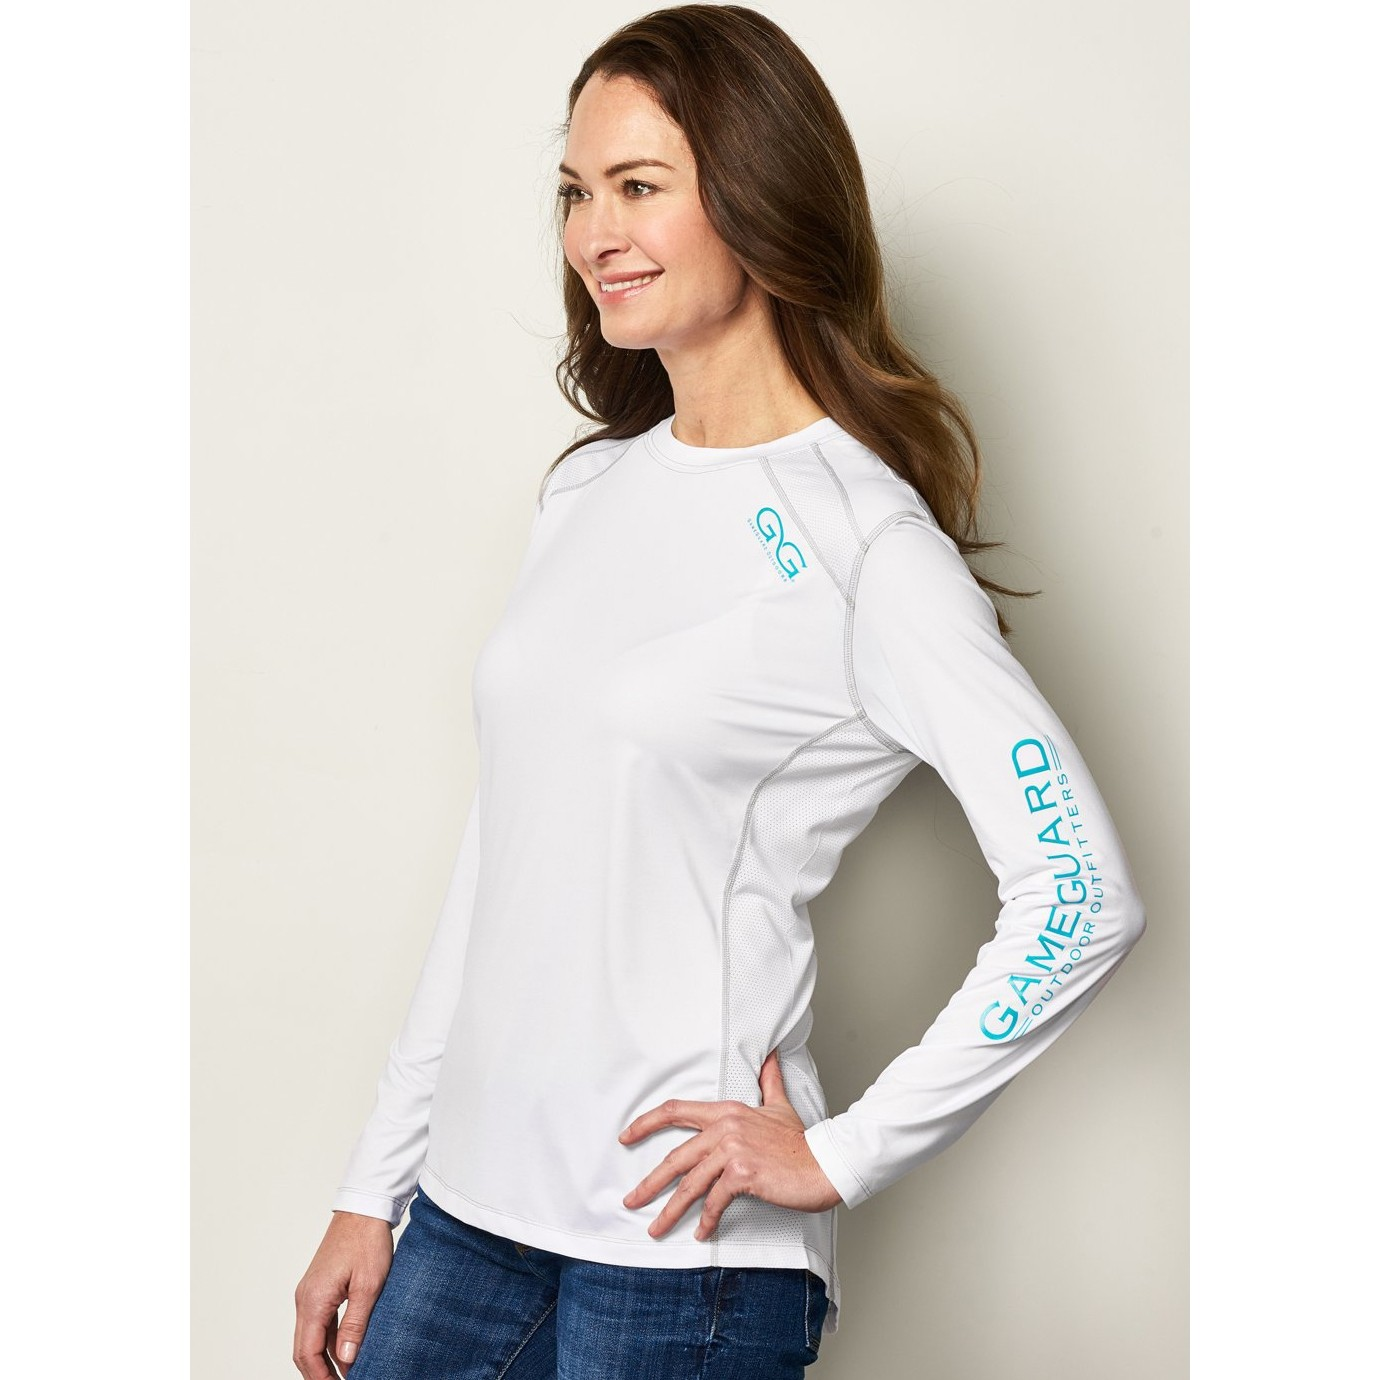 GameGuard Ladies' White Long Sleeve Performance Tee